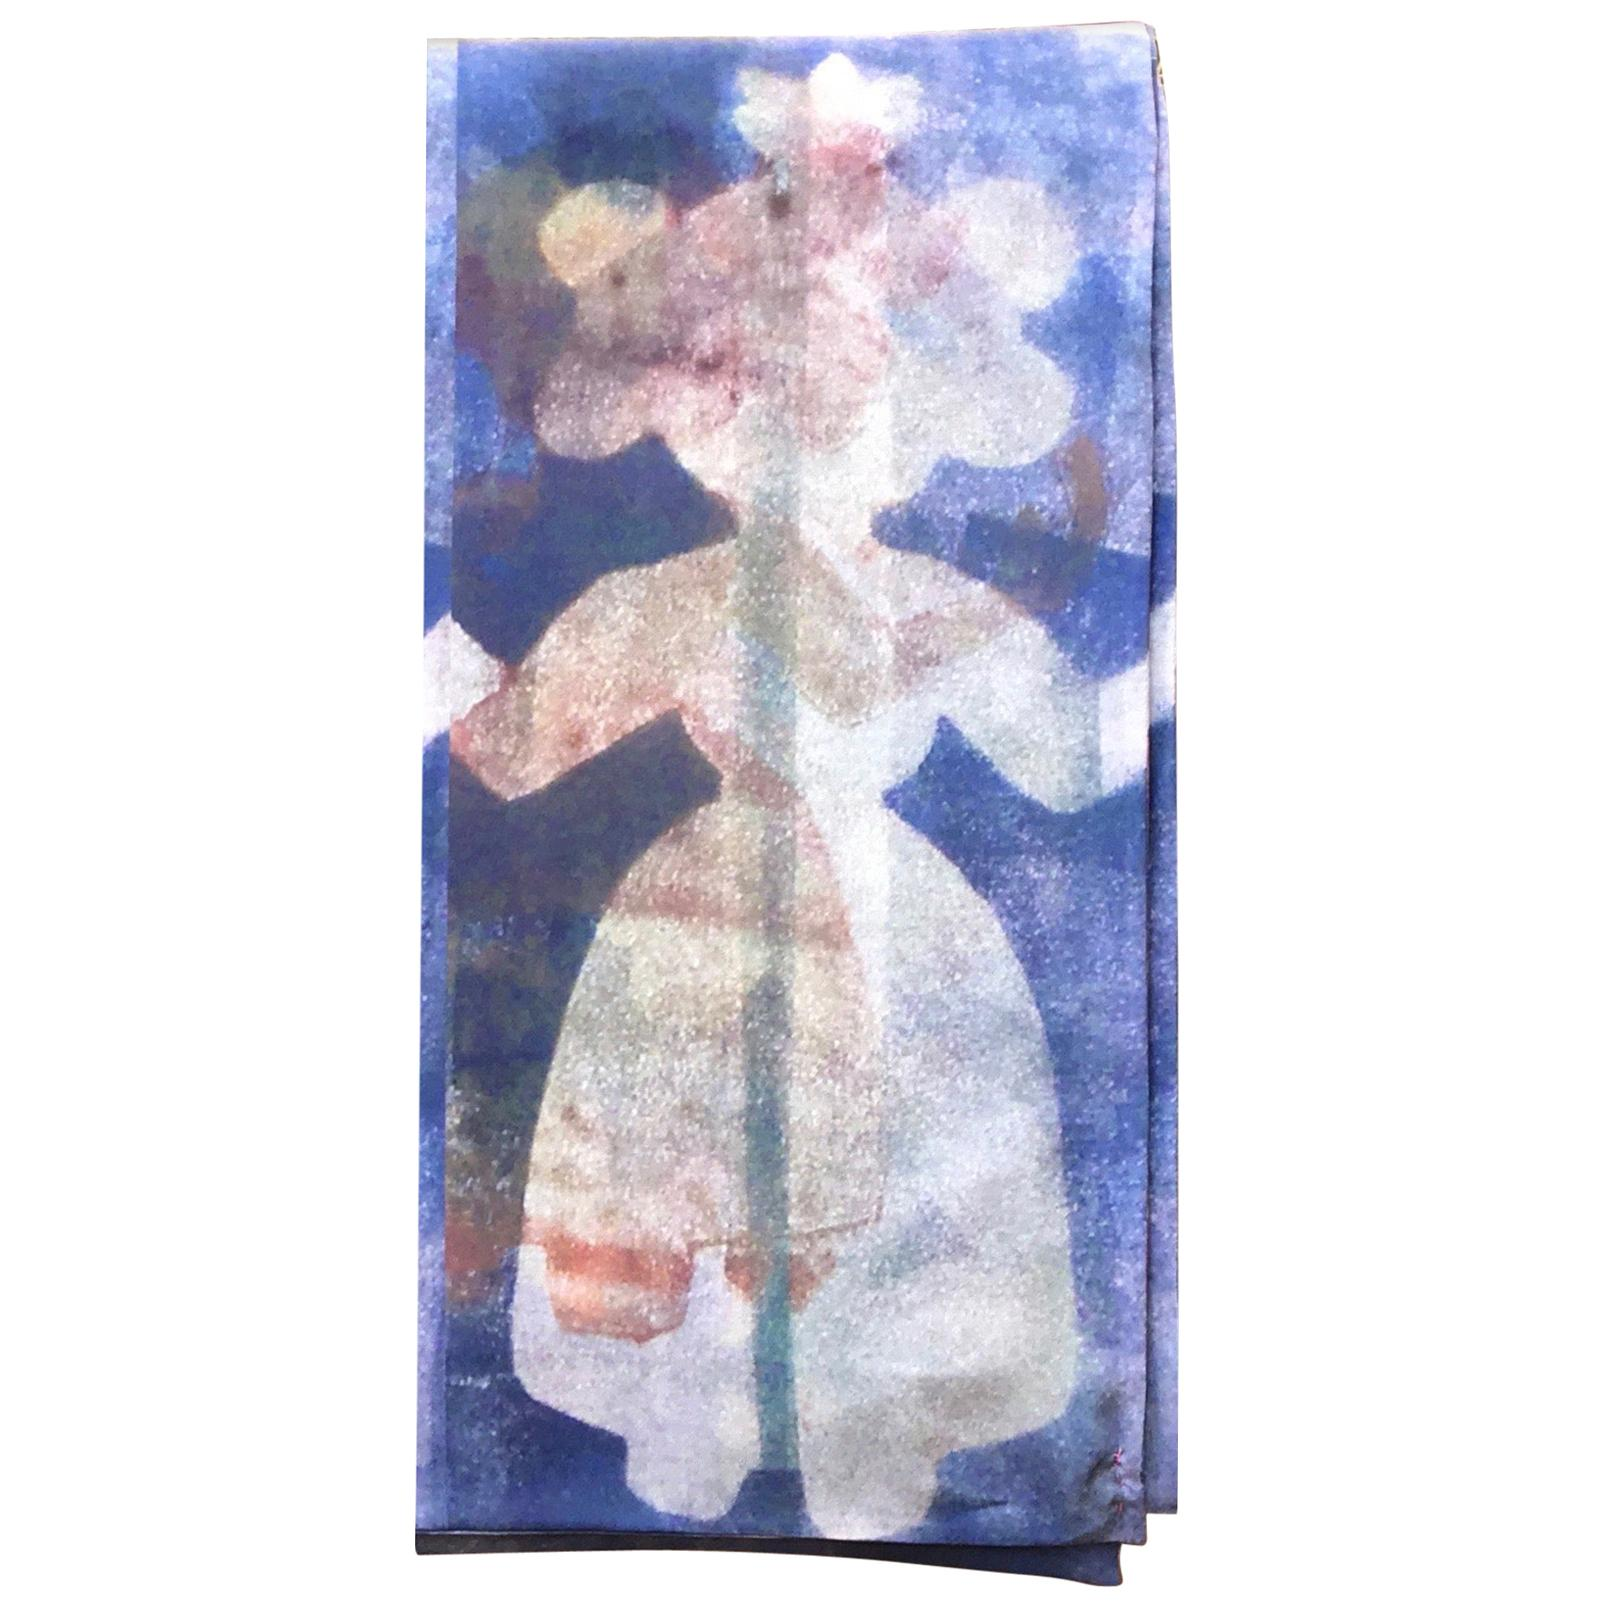 She Stands With Me, scarf, wearable art, blue, white, female, Native American